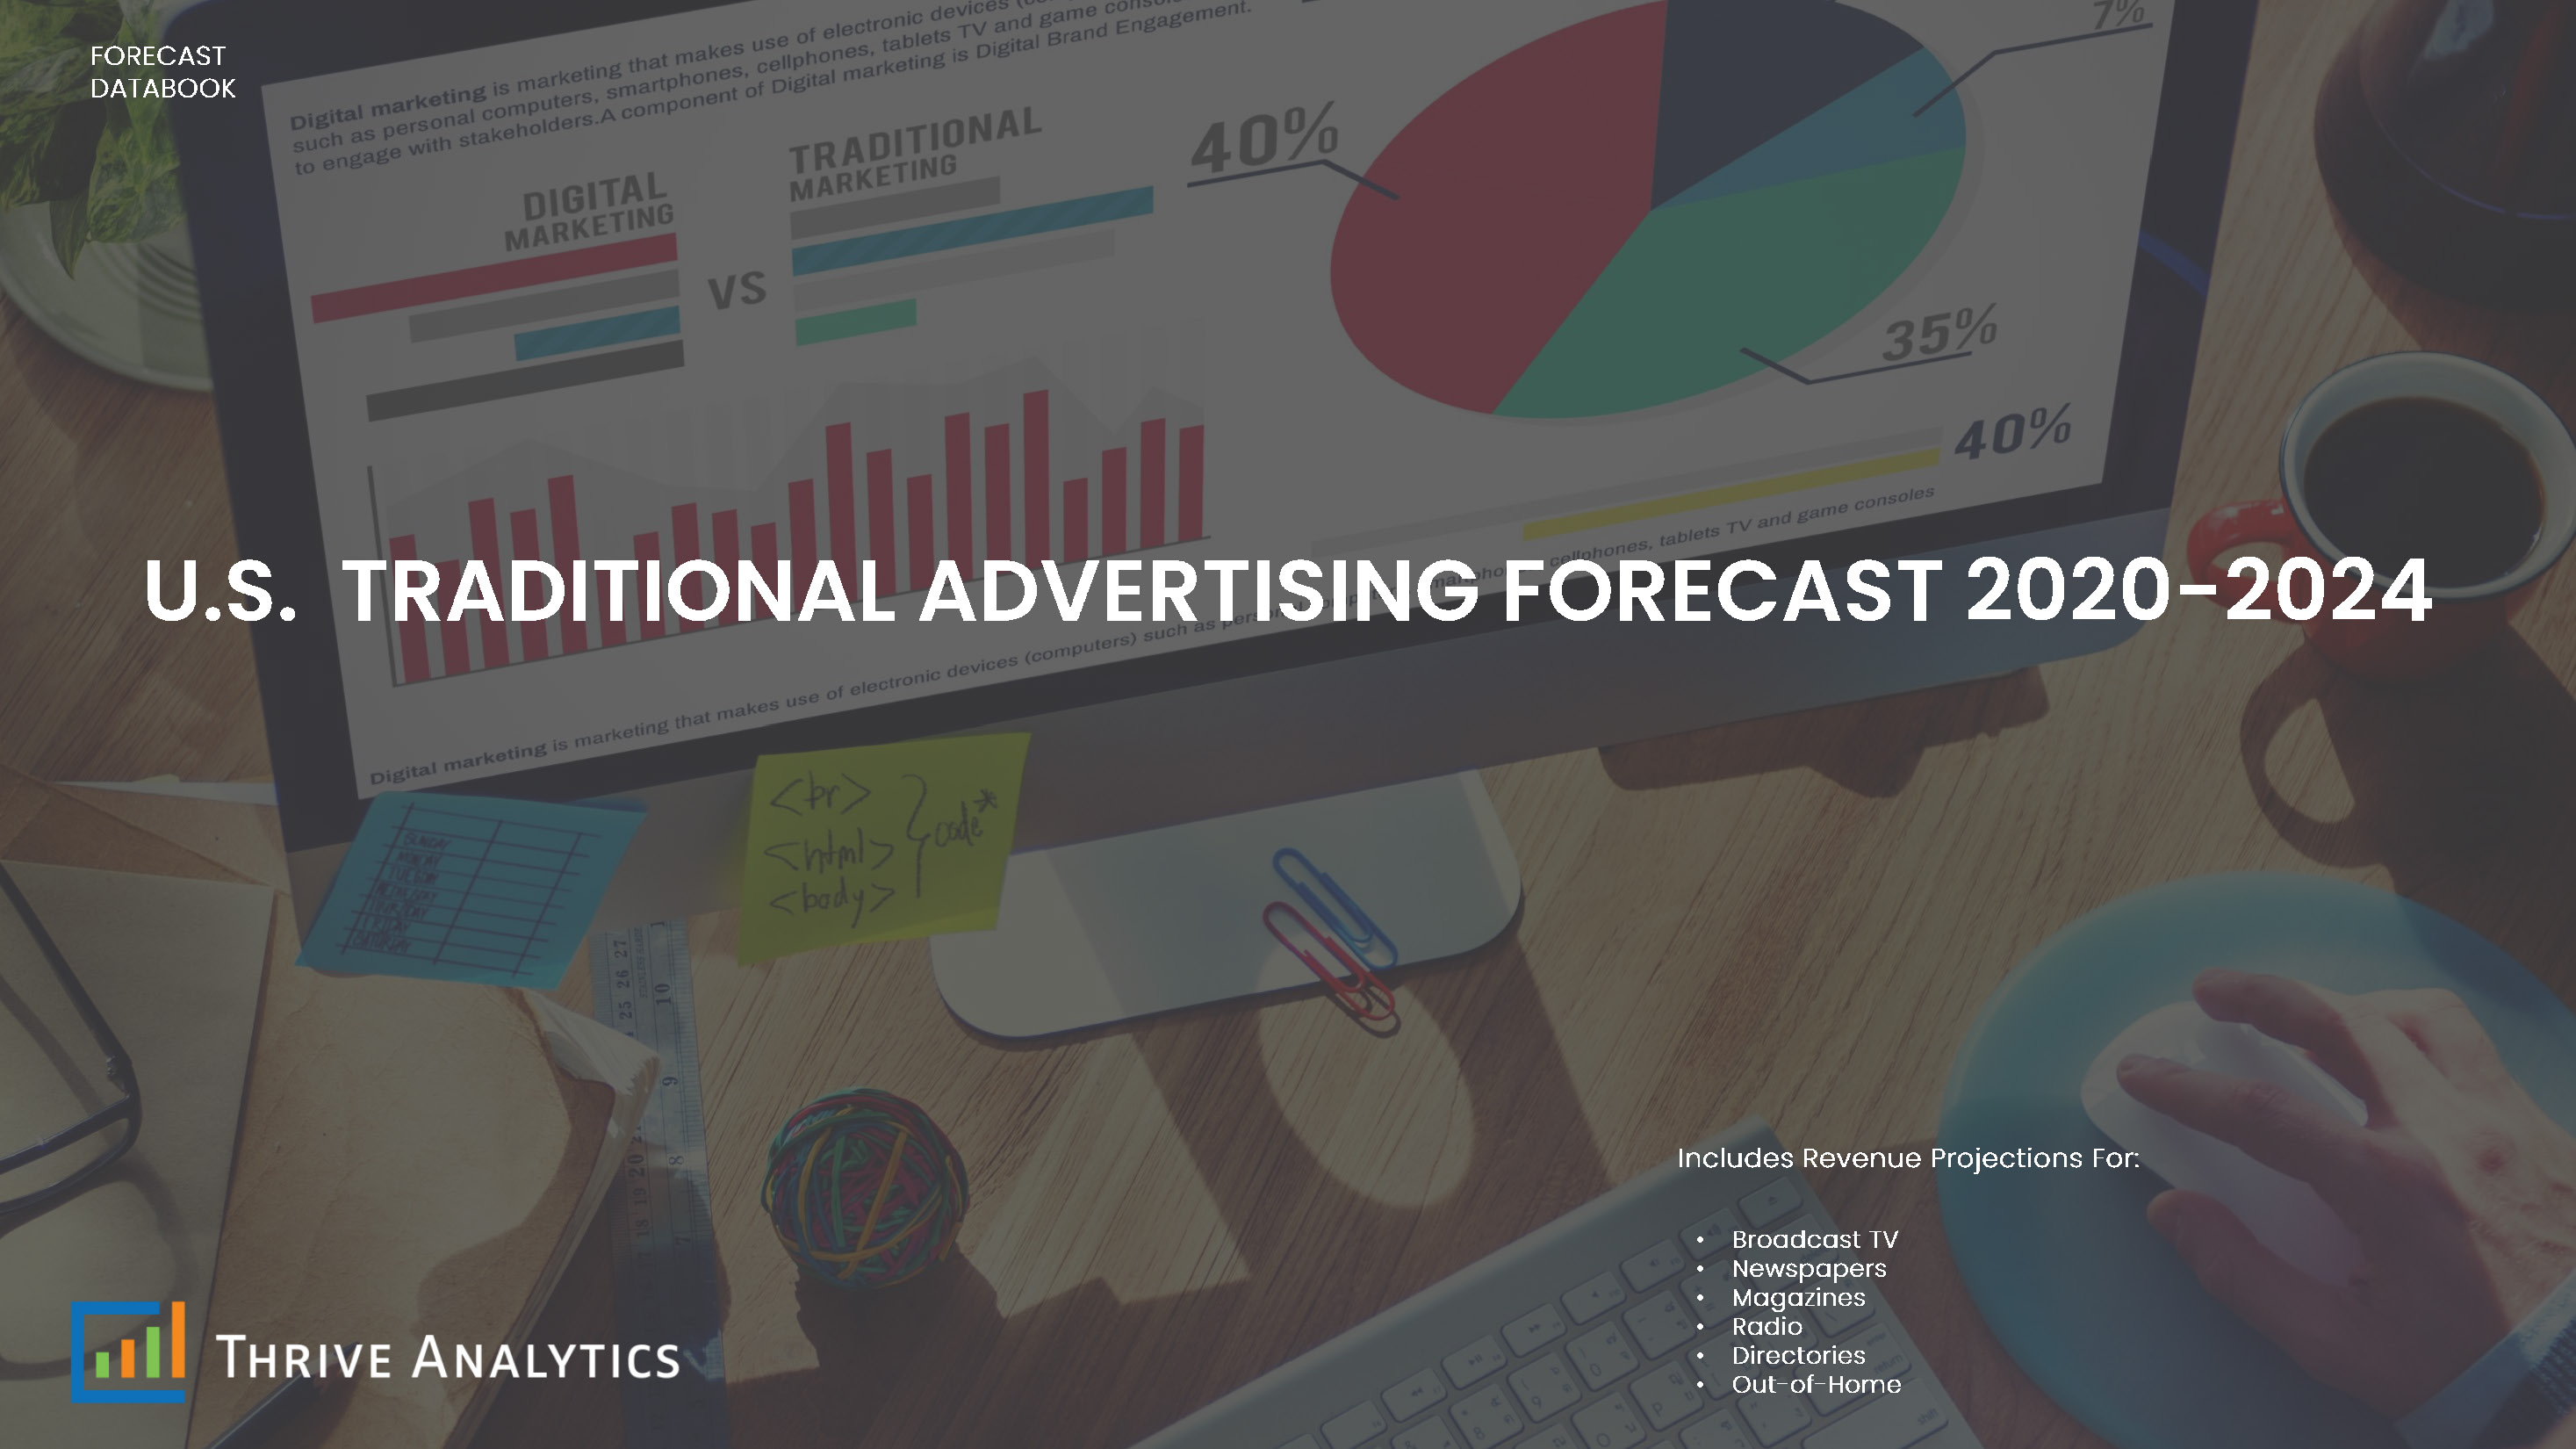 U.S. Traditional Advertising Forecast 2020-2024